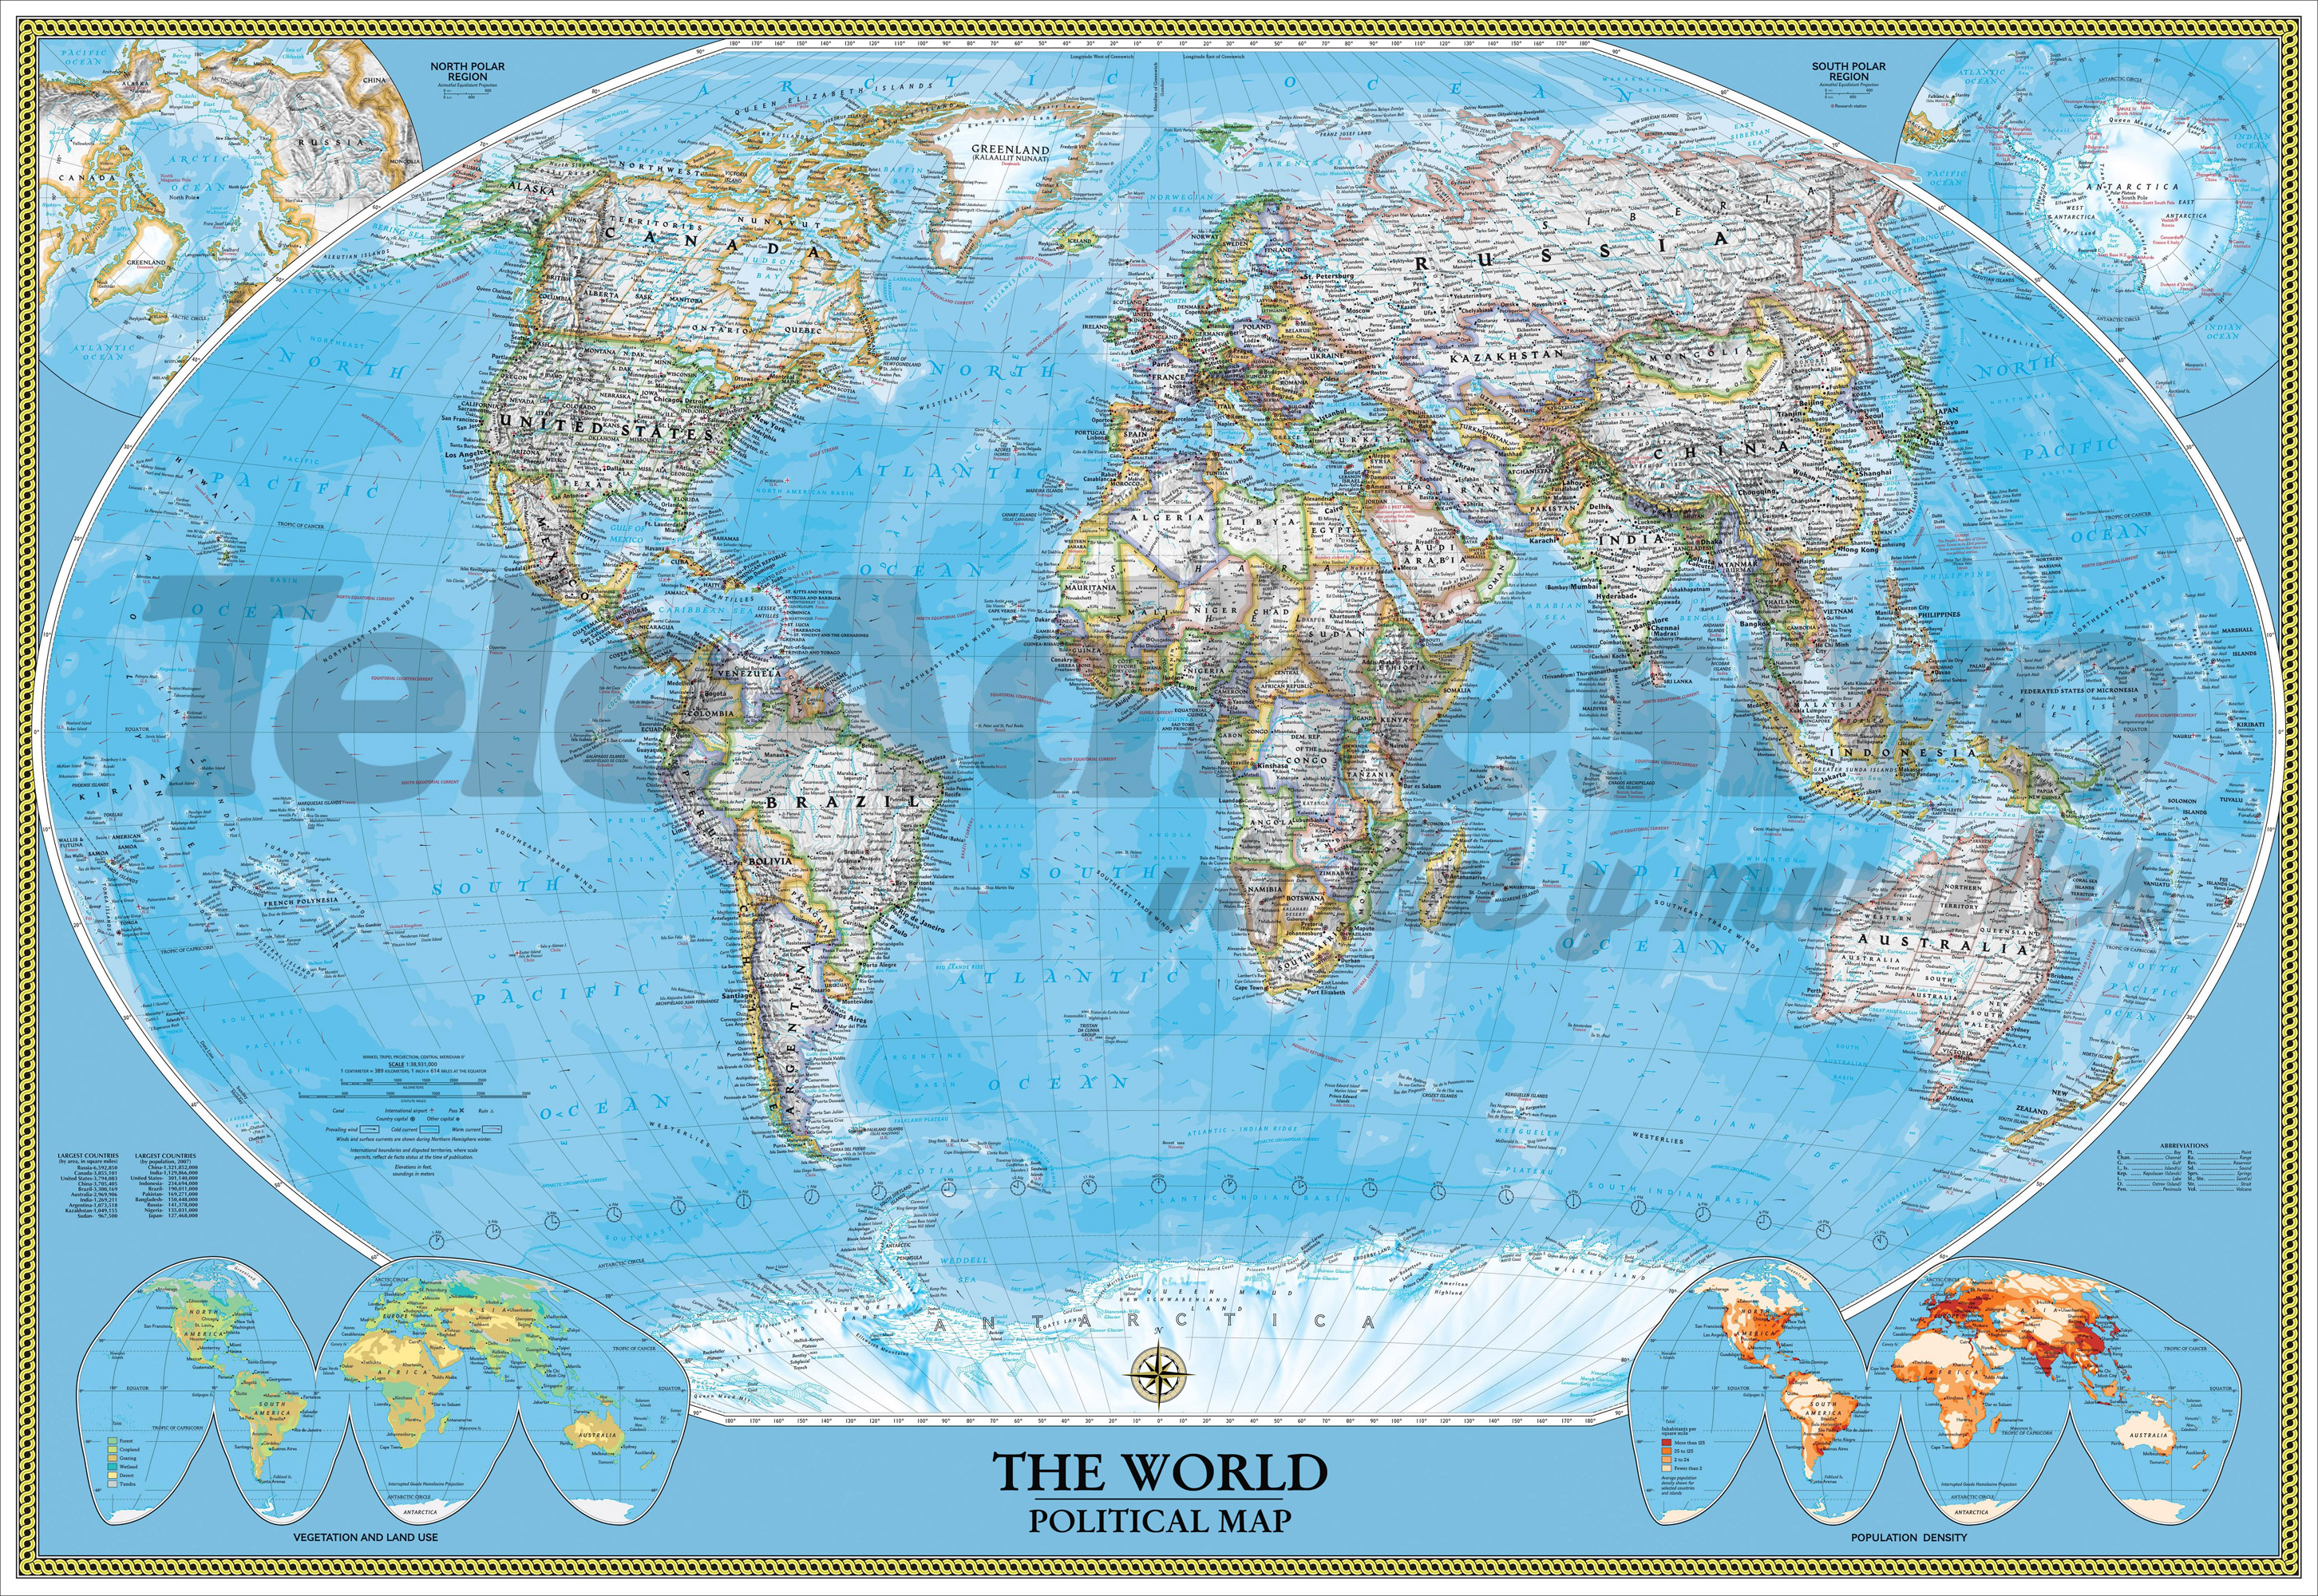 Fototapeten: World Polical Map